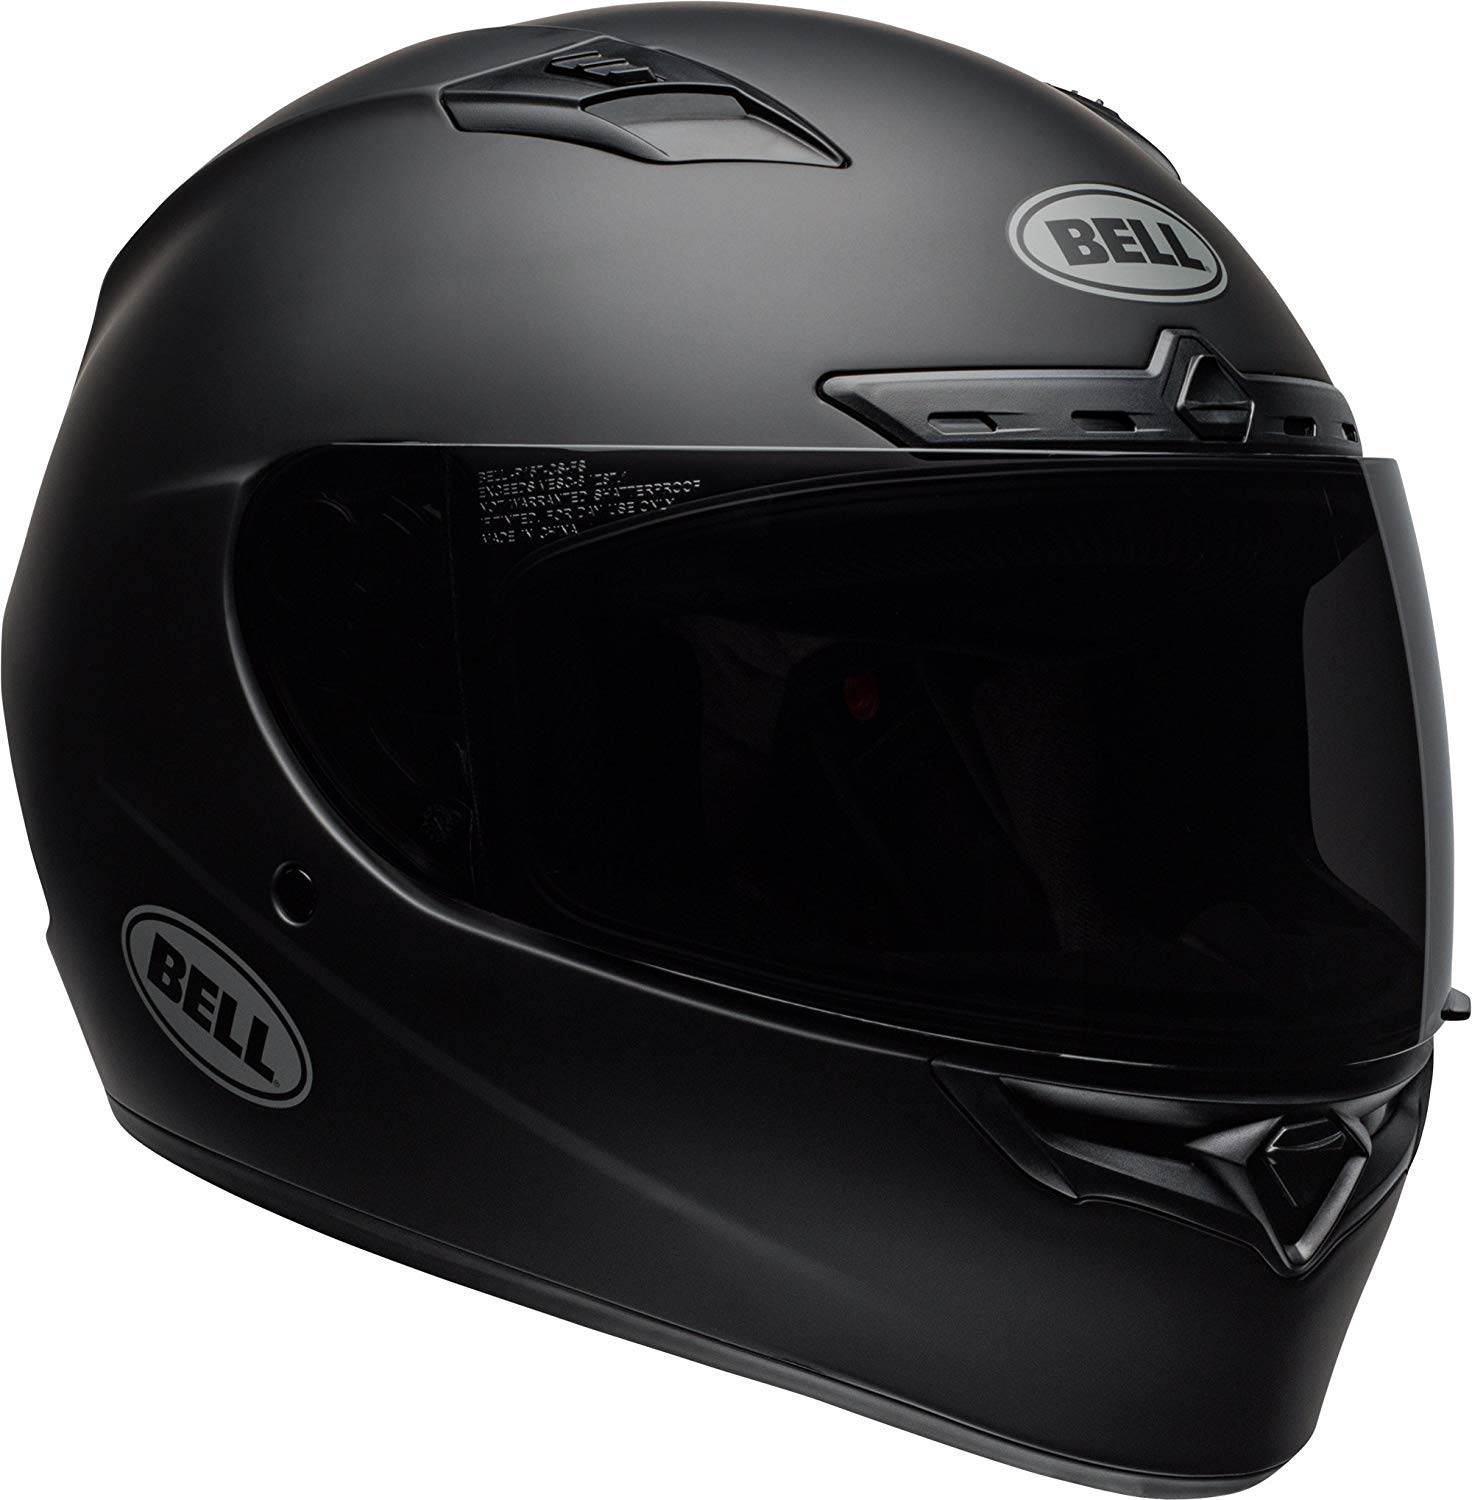 Bell Qualifier DLX Blackout Street Motorcycle Helmet (Blackout Matte Black, XXX-Large) by Bell